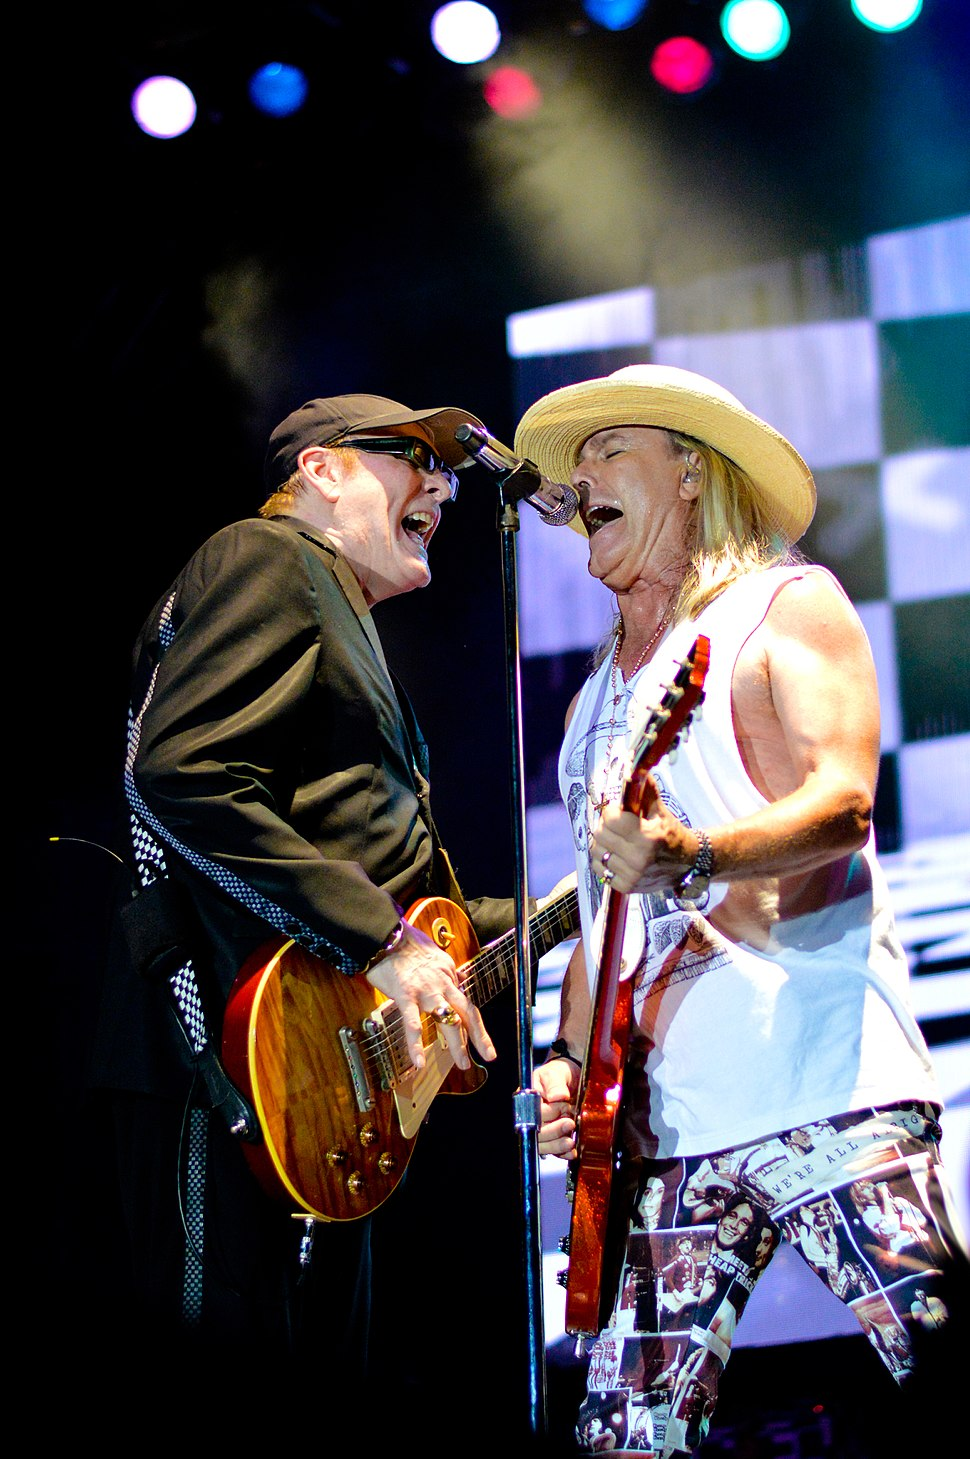 Cheap Trick live at Rockfest 80's in 2017